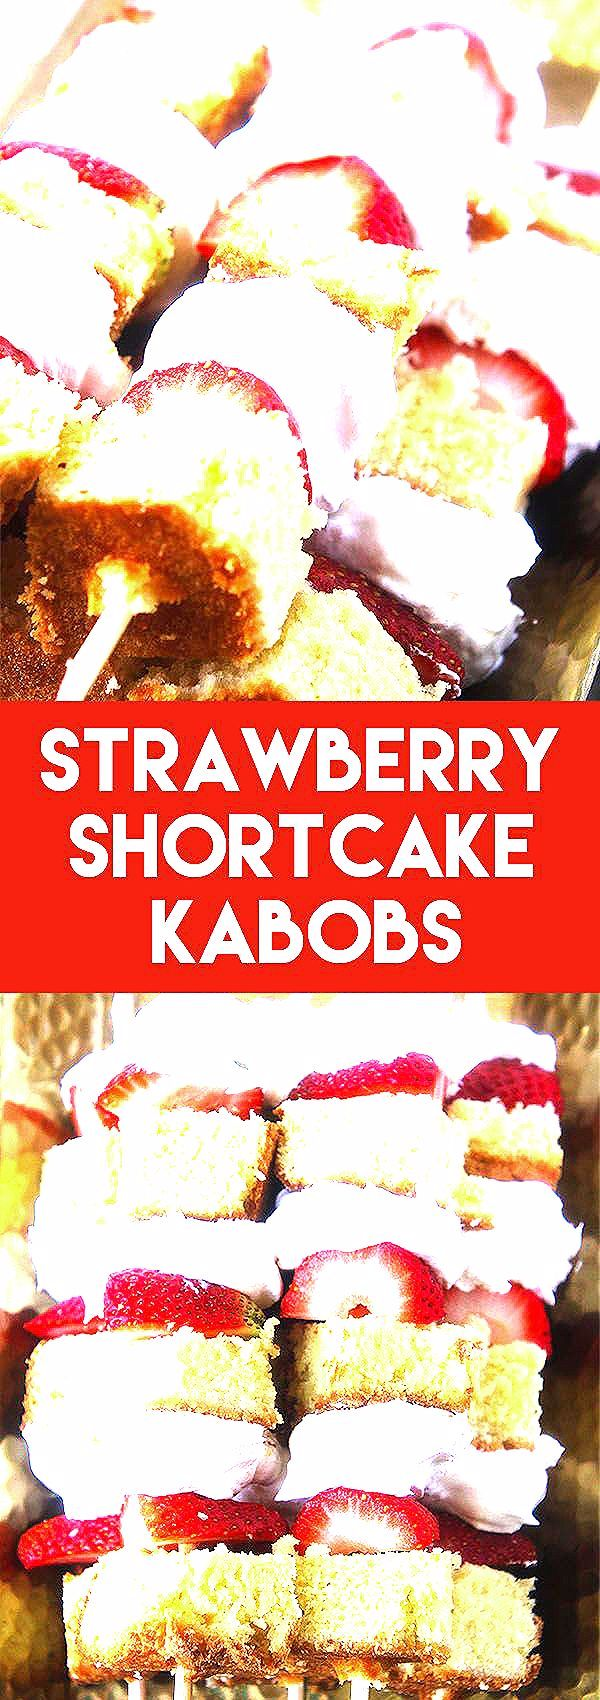 Photo of Strawberry Shortcake Kabobs